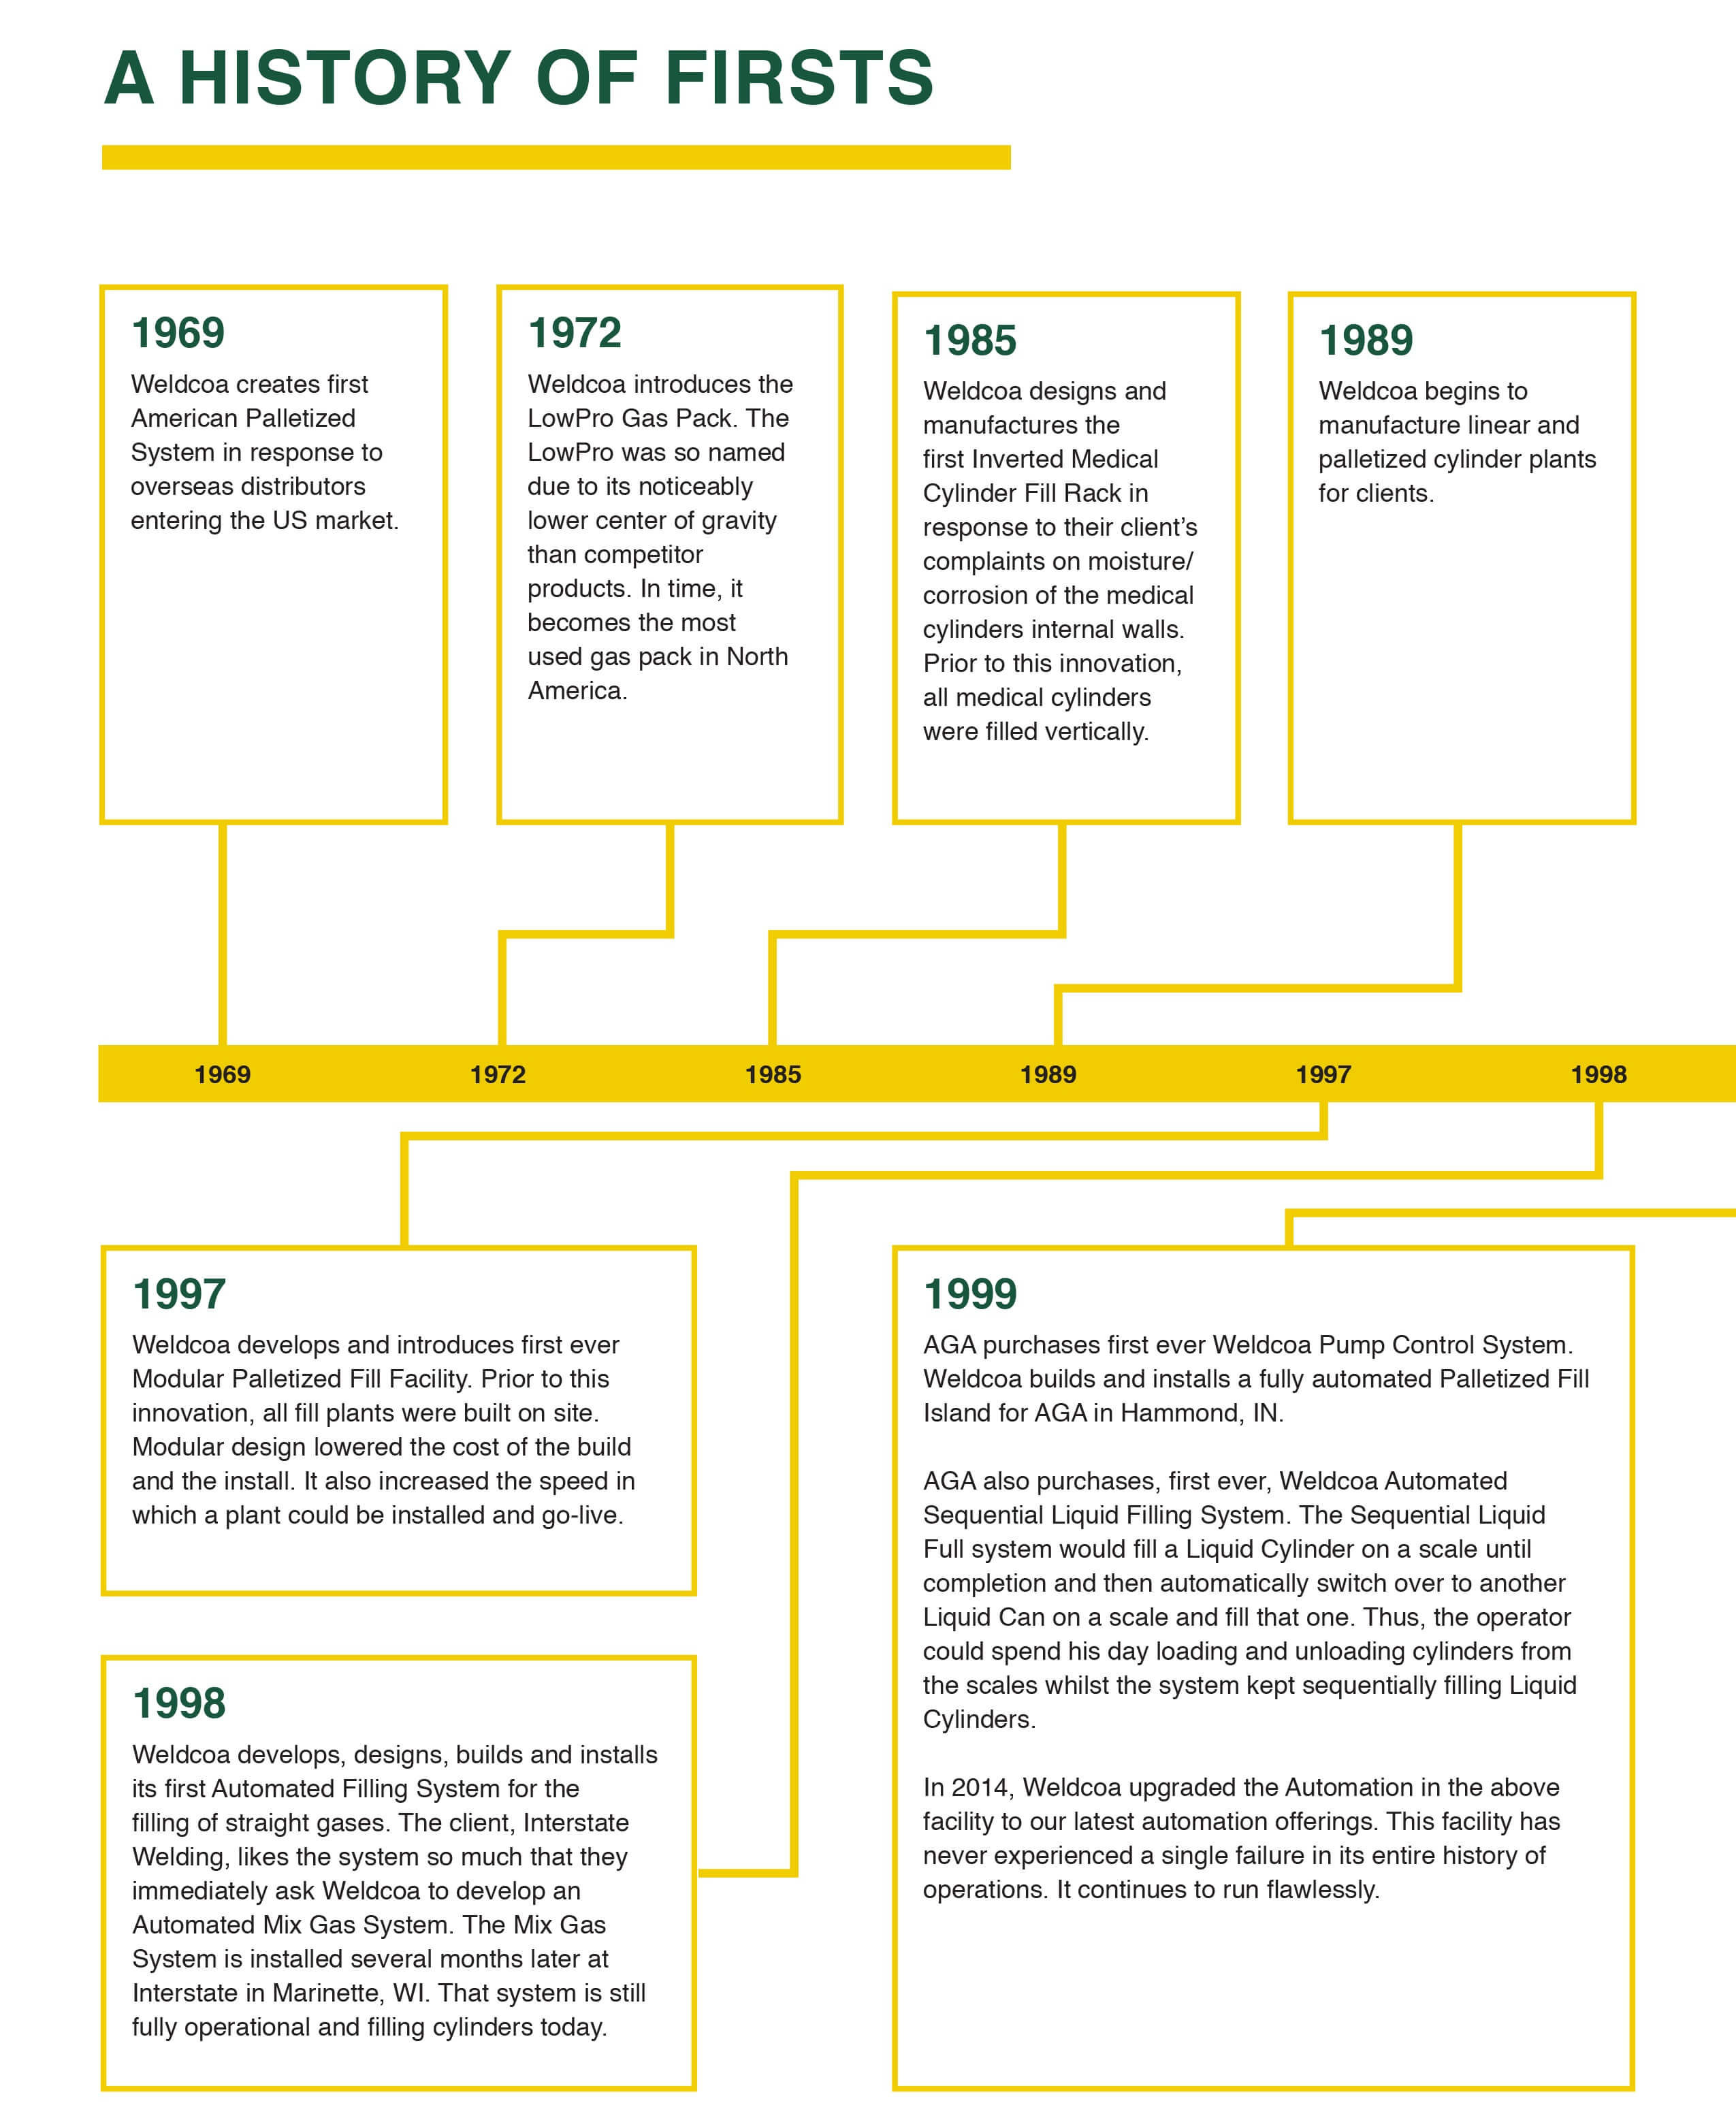 History of Firsts 1969-1999